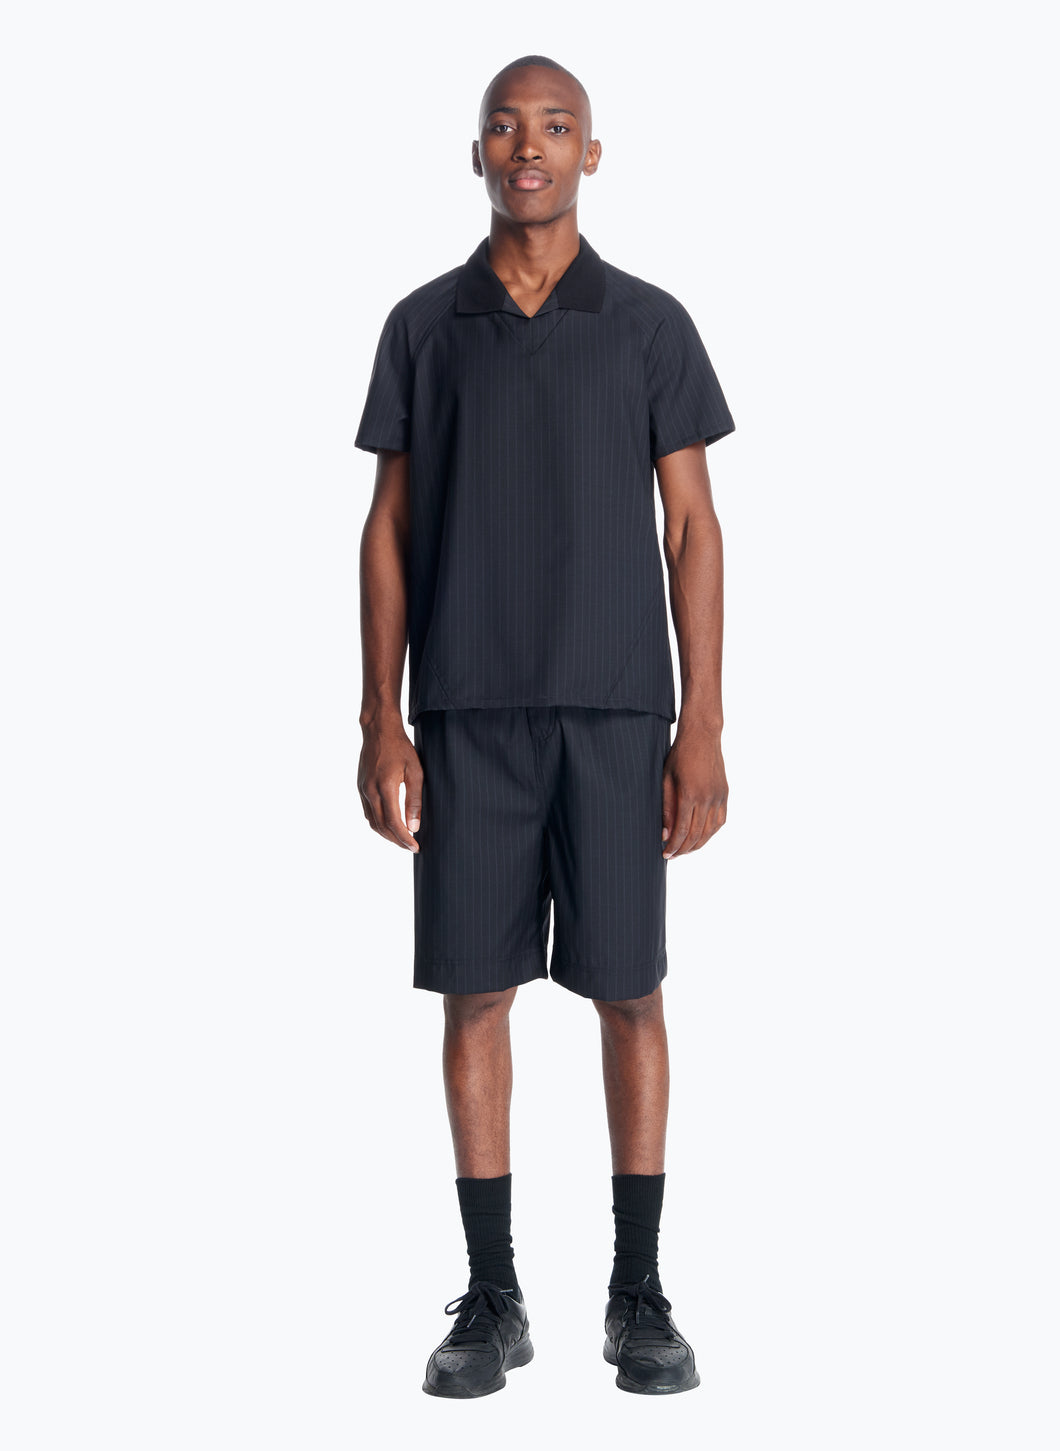 Soccer-Style Poloshirt in Black Striped Cool Wool